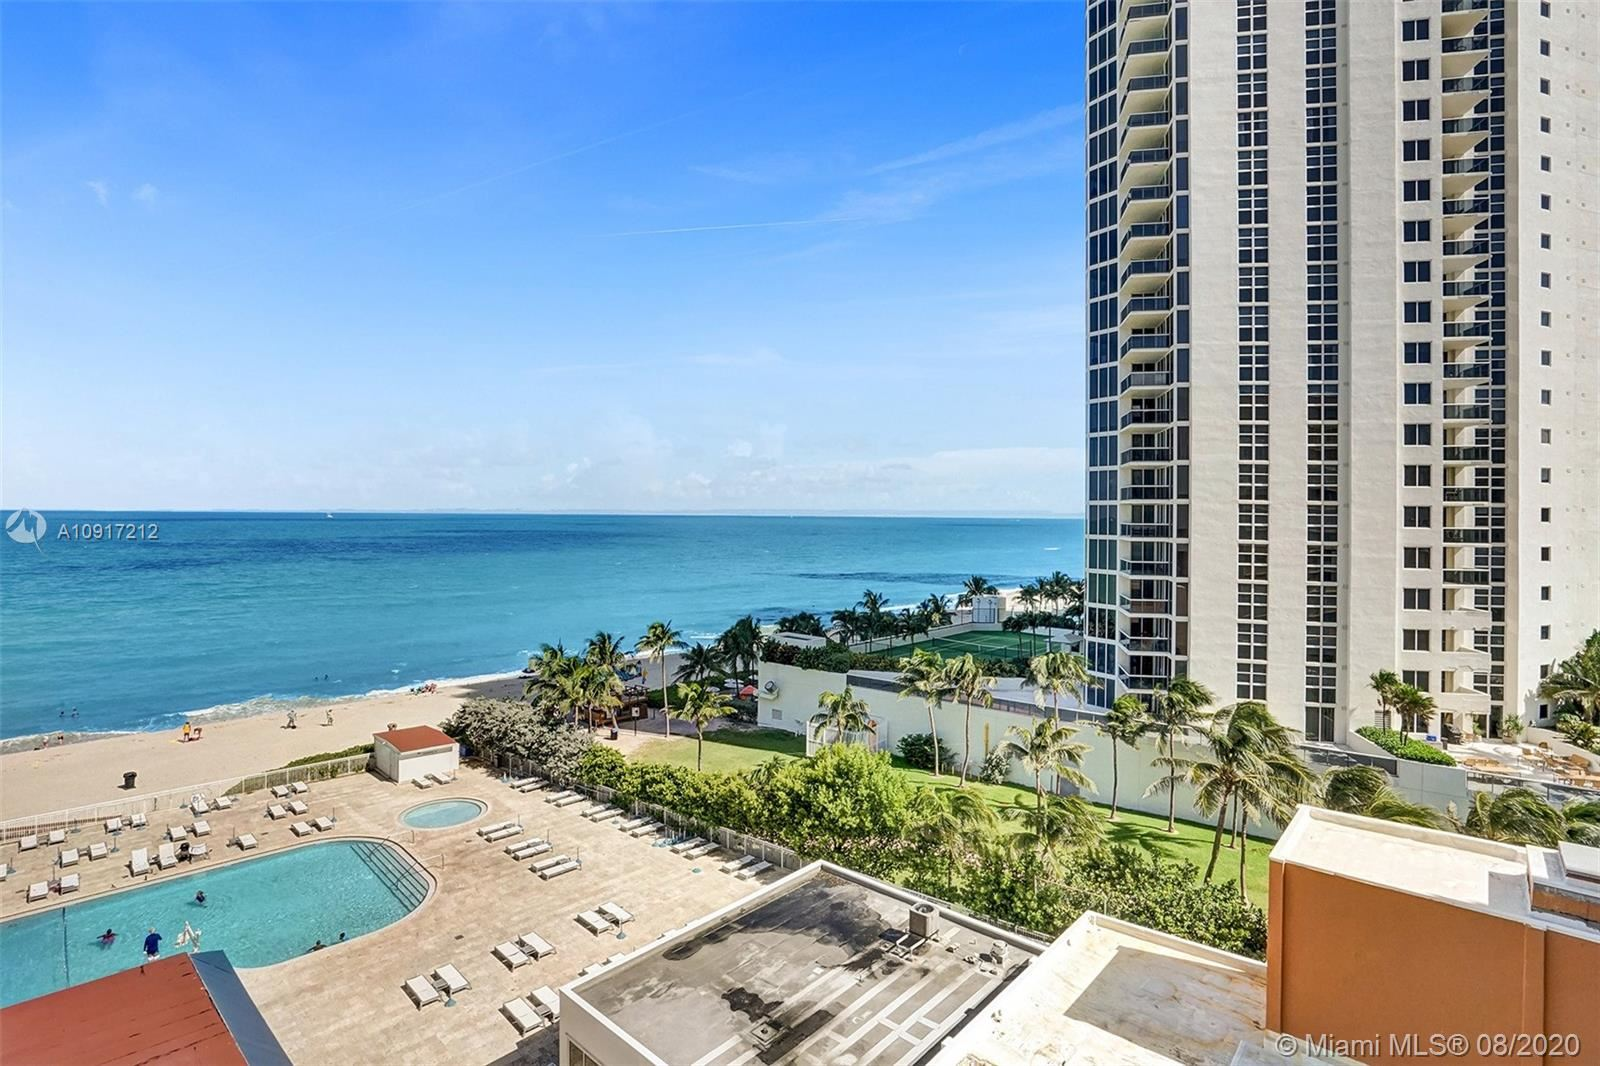 19201 Collins Ave #606, Sunny Isles, FL 33160 - #: A10917212